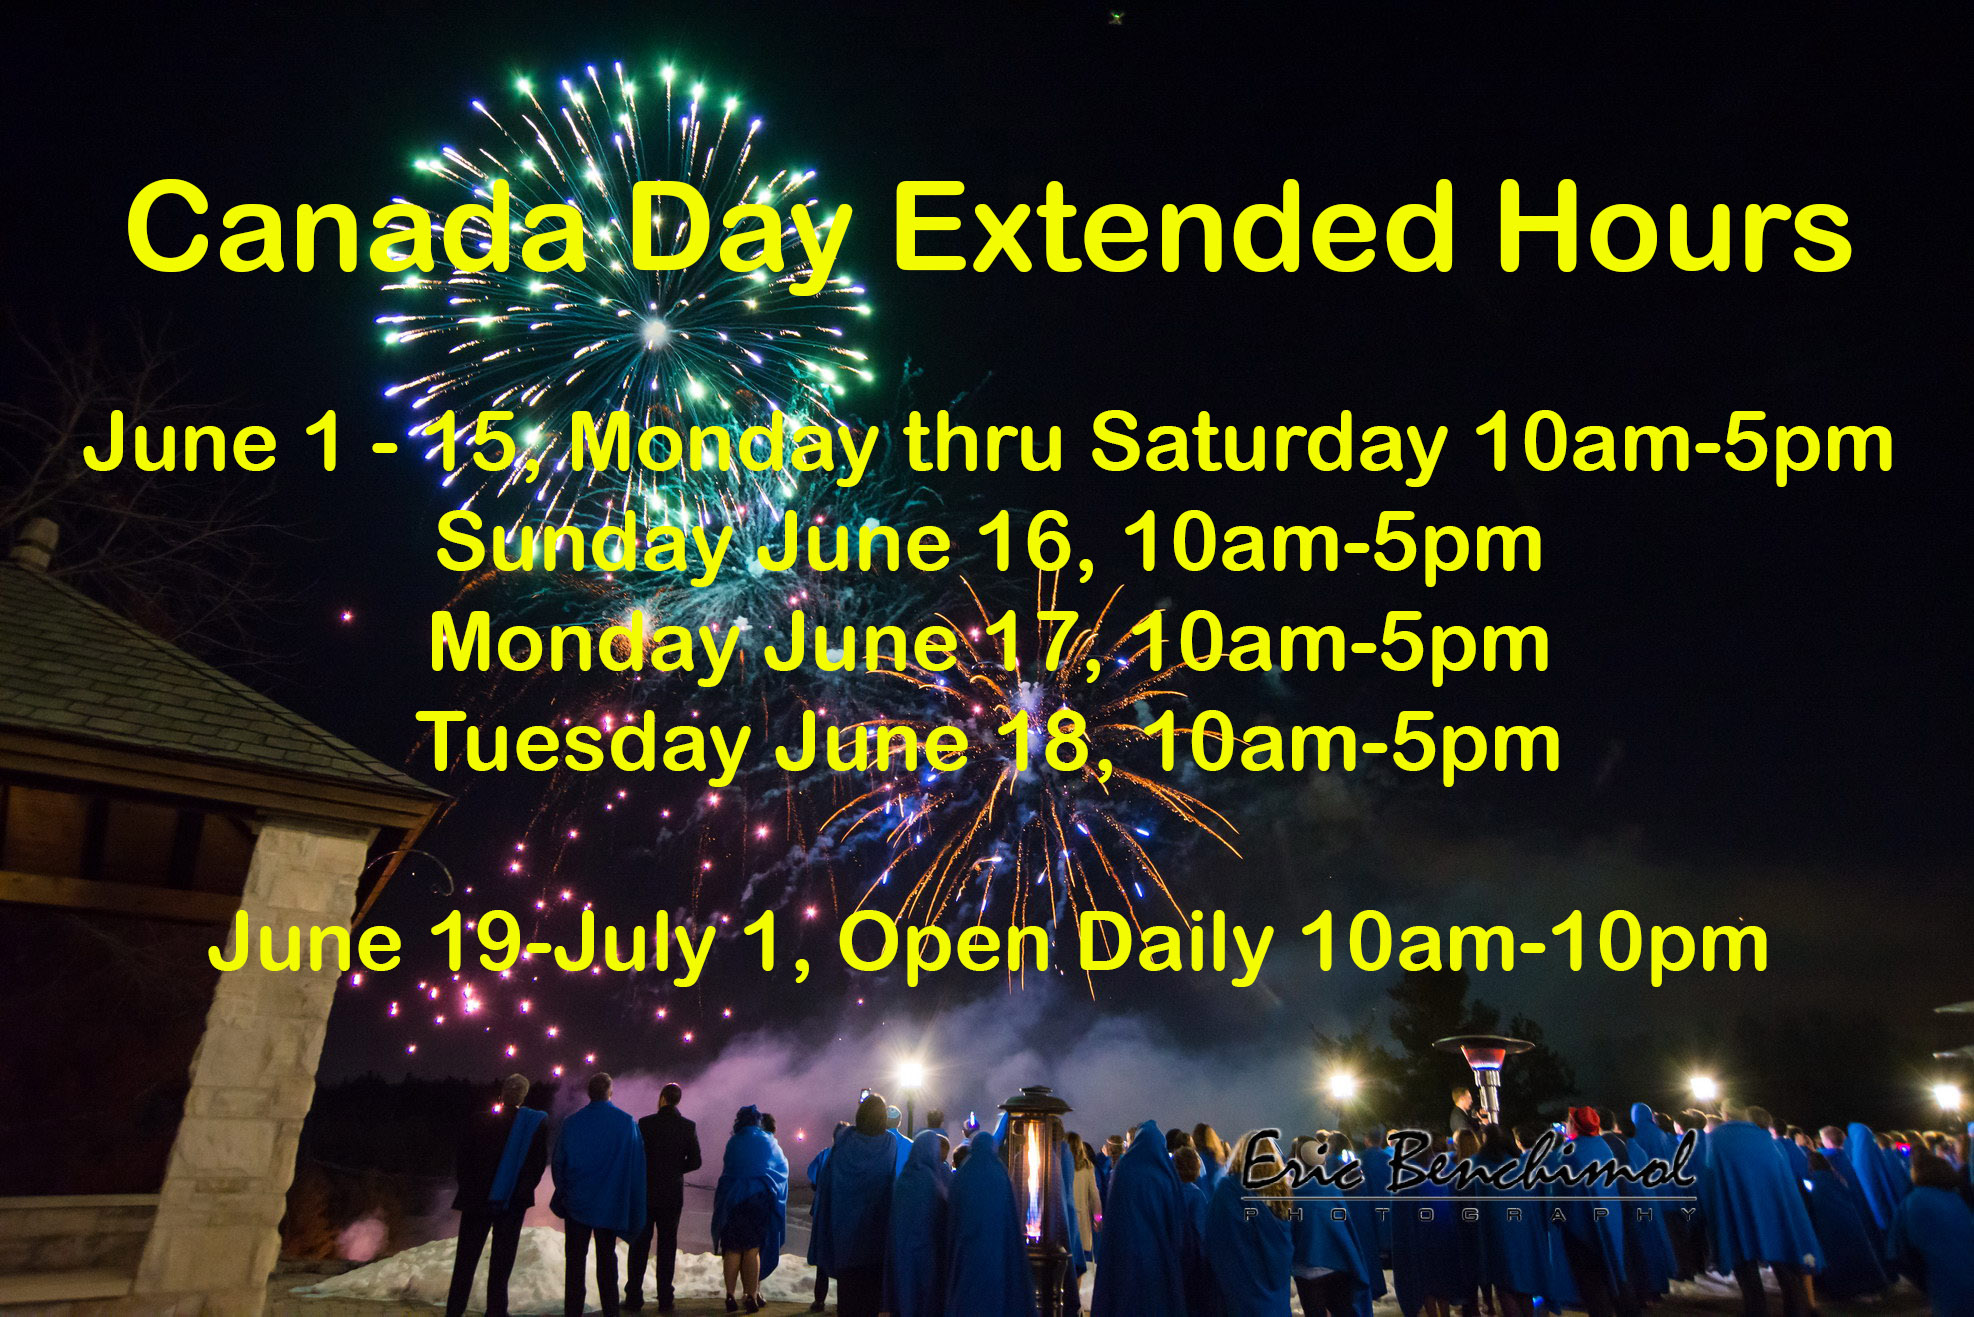 Canada Day hours 2019